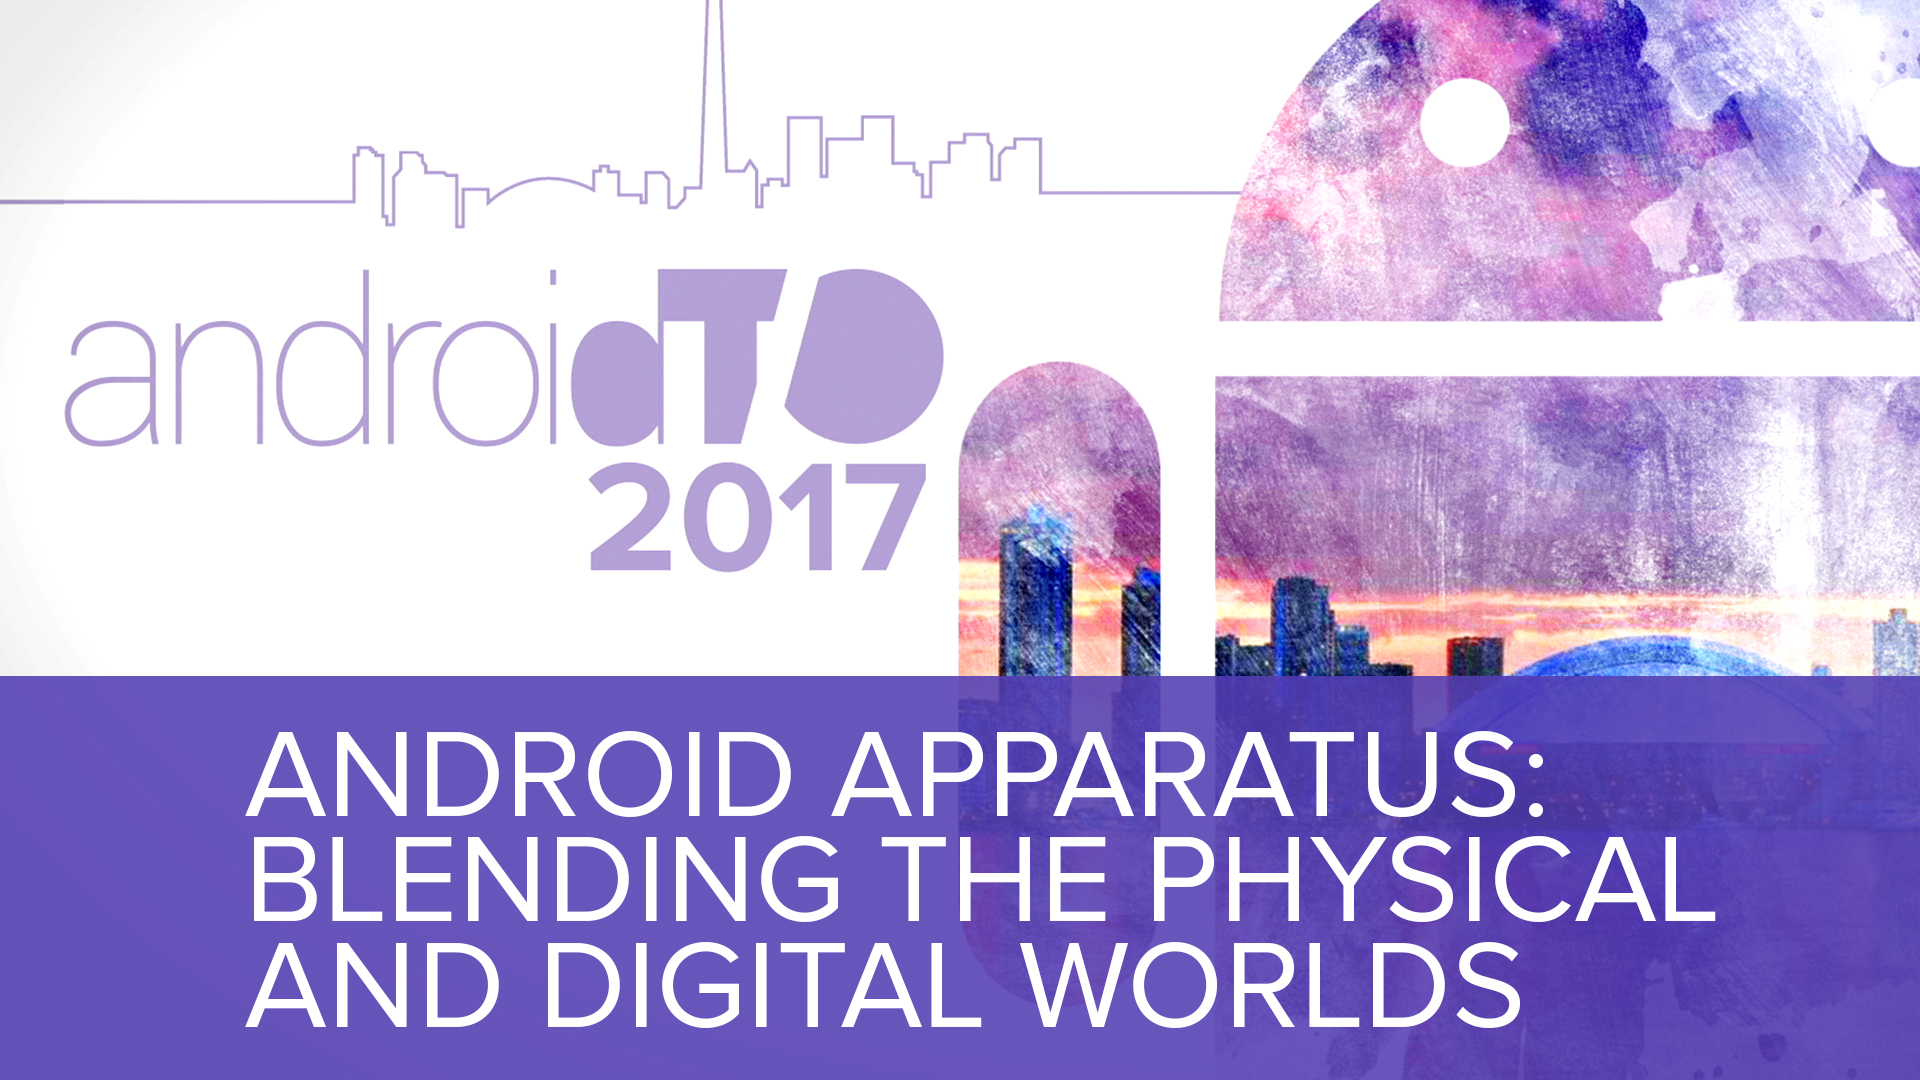 Android Apparatus: Blending the Physical and Digital Worlds - Lindy Wilkins & Hillary Predko